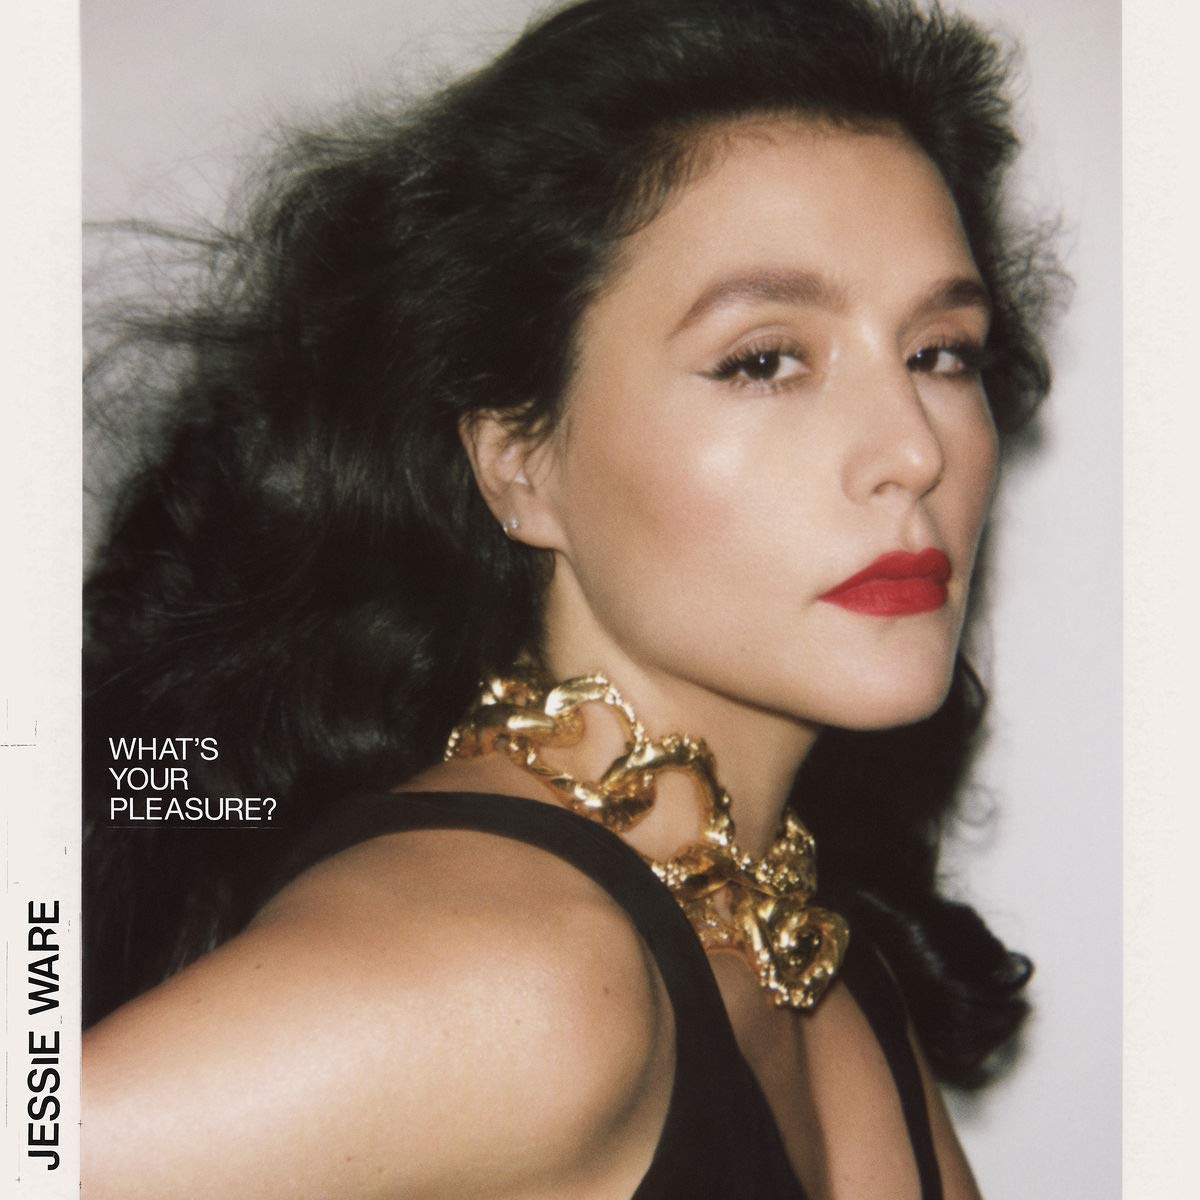 Jessie Ware - What's Your Pleasure? (2020) [FLAC] Download